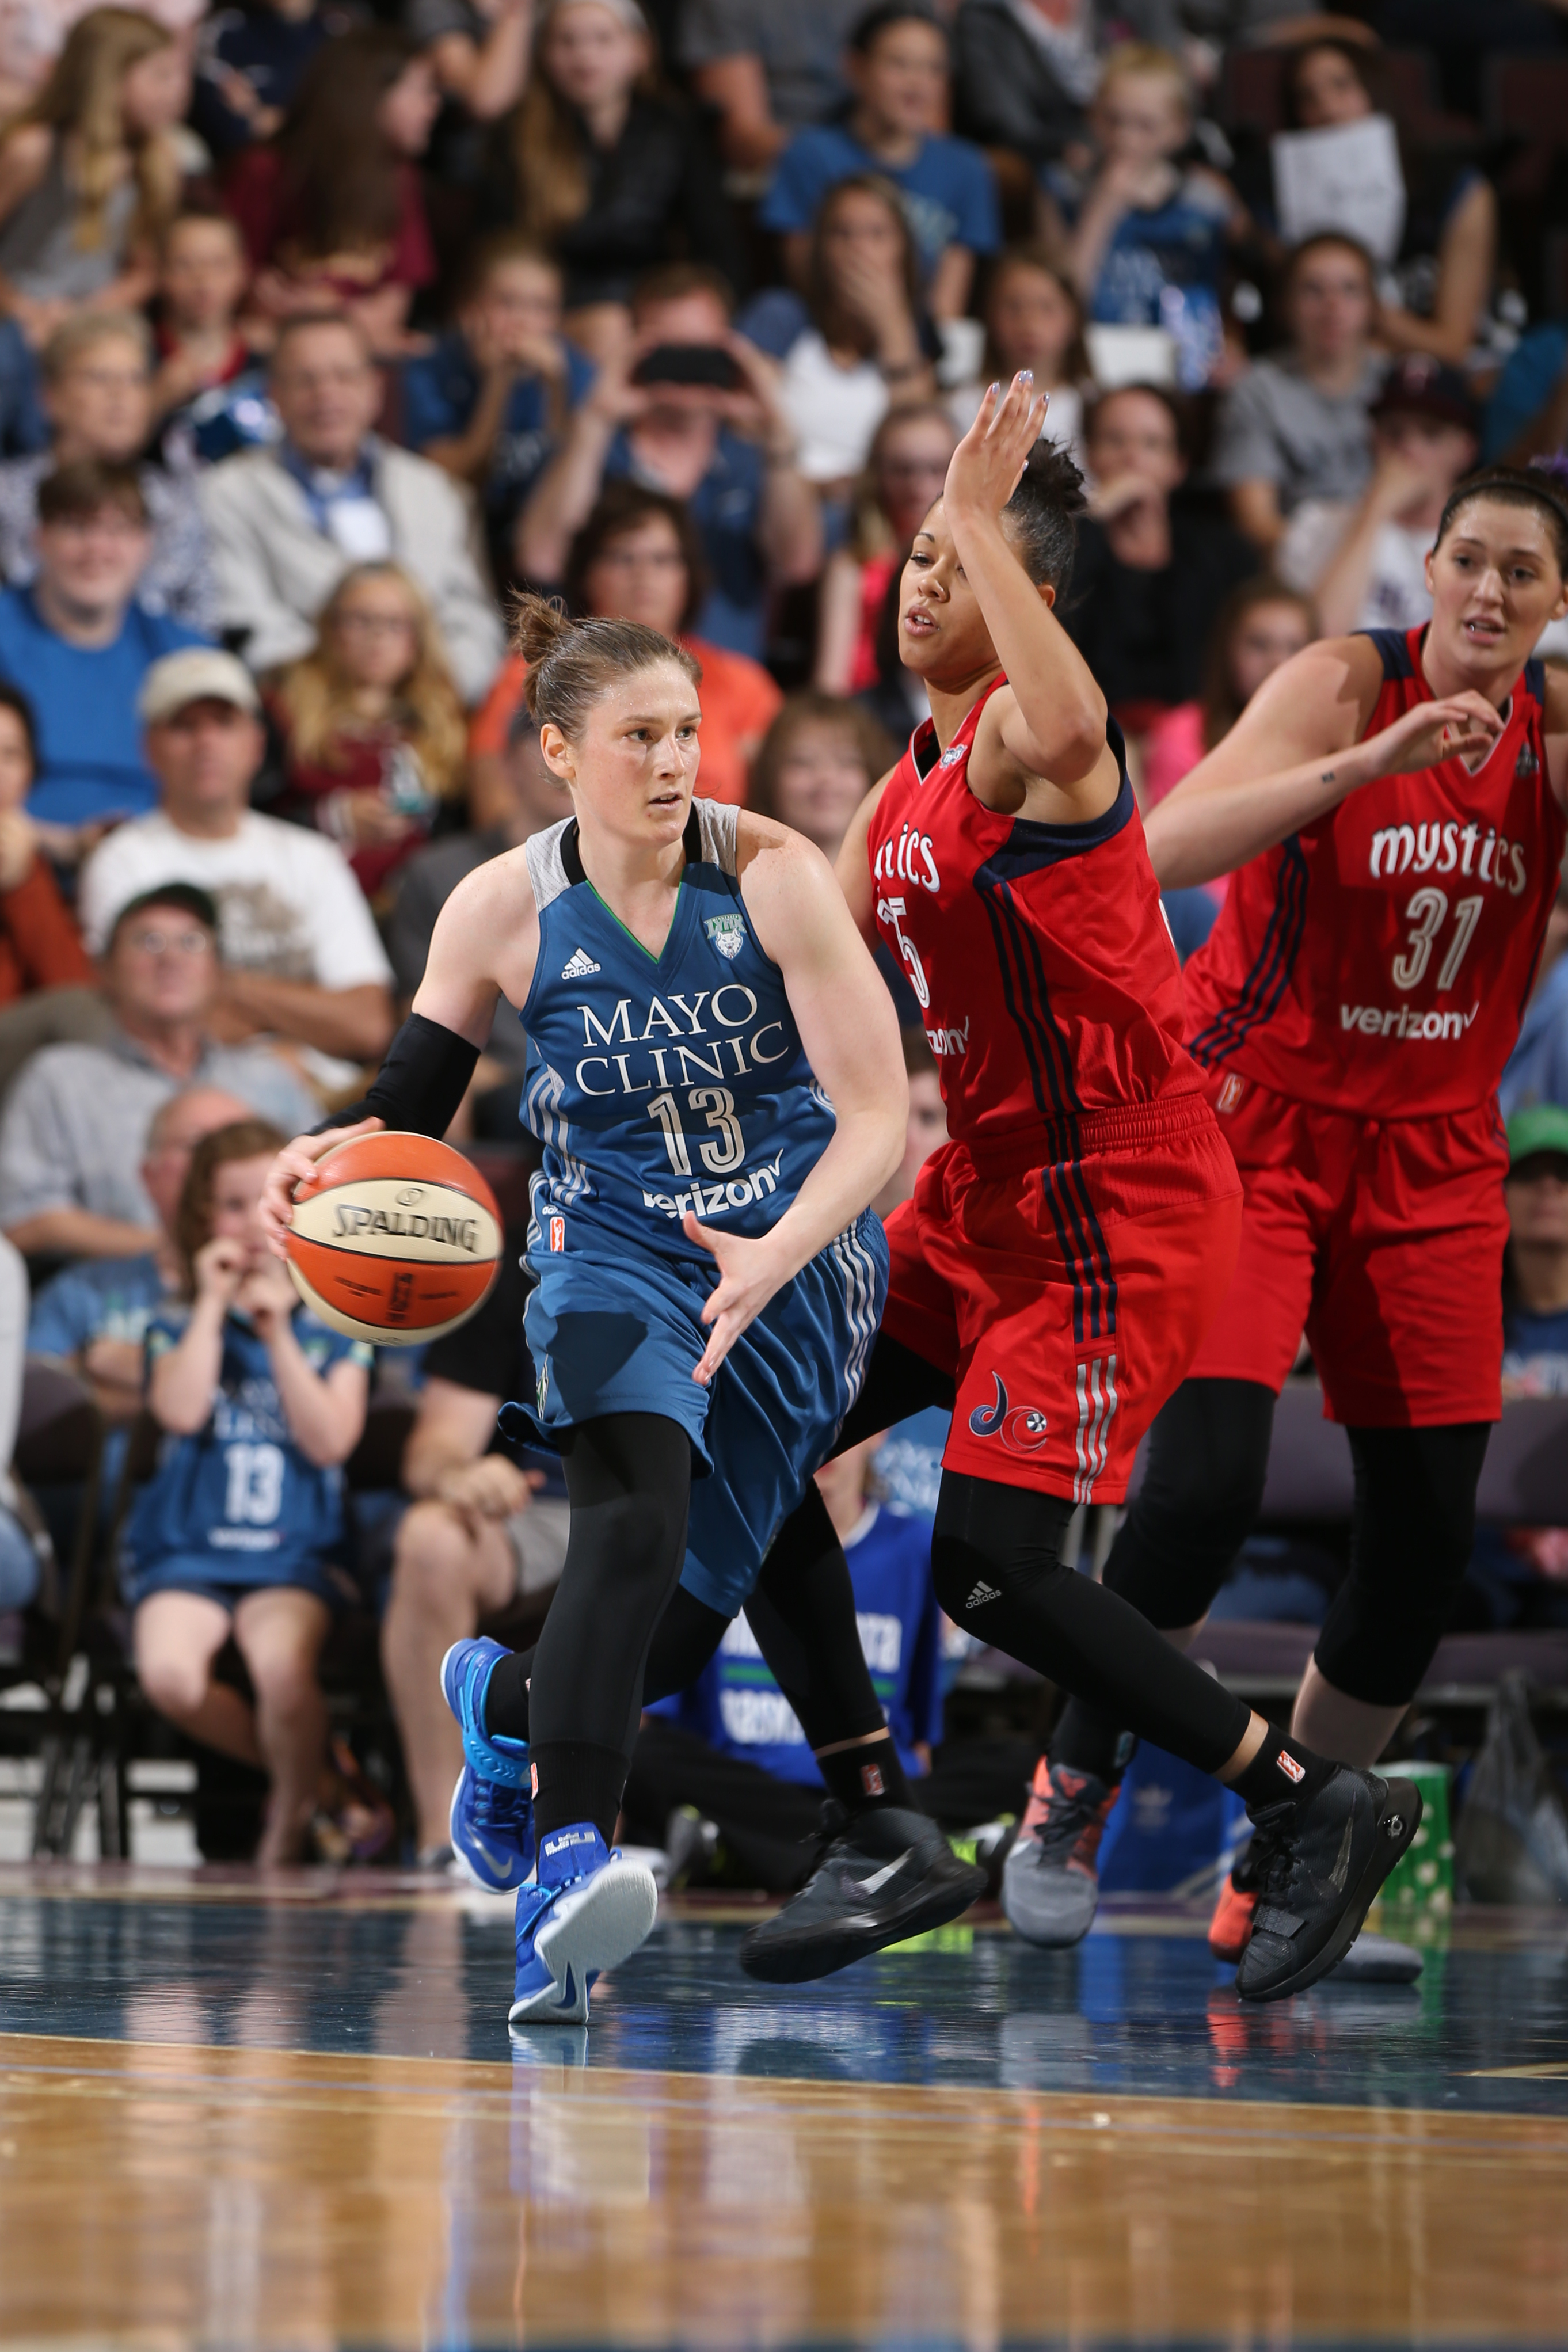 ROCHESTER, MN - MAY 8: Lindsay Whalen #13 of the Minnesota Lynx looks to pass against Natasha Cloud #15 of the Washington Mystics during the preseason game on May 8, 2016 at the Mayo Civic Center in Rochester, Minnesota. NOTE TO USER: User expressly acknowledges and agrees that, by downloading and or using this Photograph, user is consenting to the terms and conditions of the Getty Images License Agreement. Mandatory Copyright Notice: Copyright 2016 NBAE (Photo by David Sherman/NBAE via Getty Images)